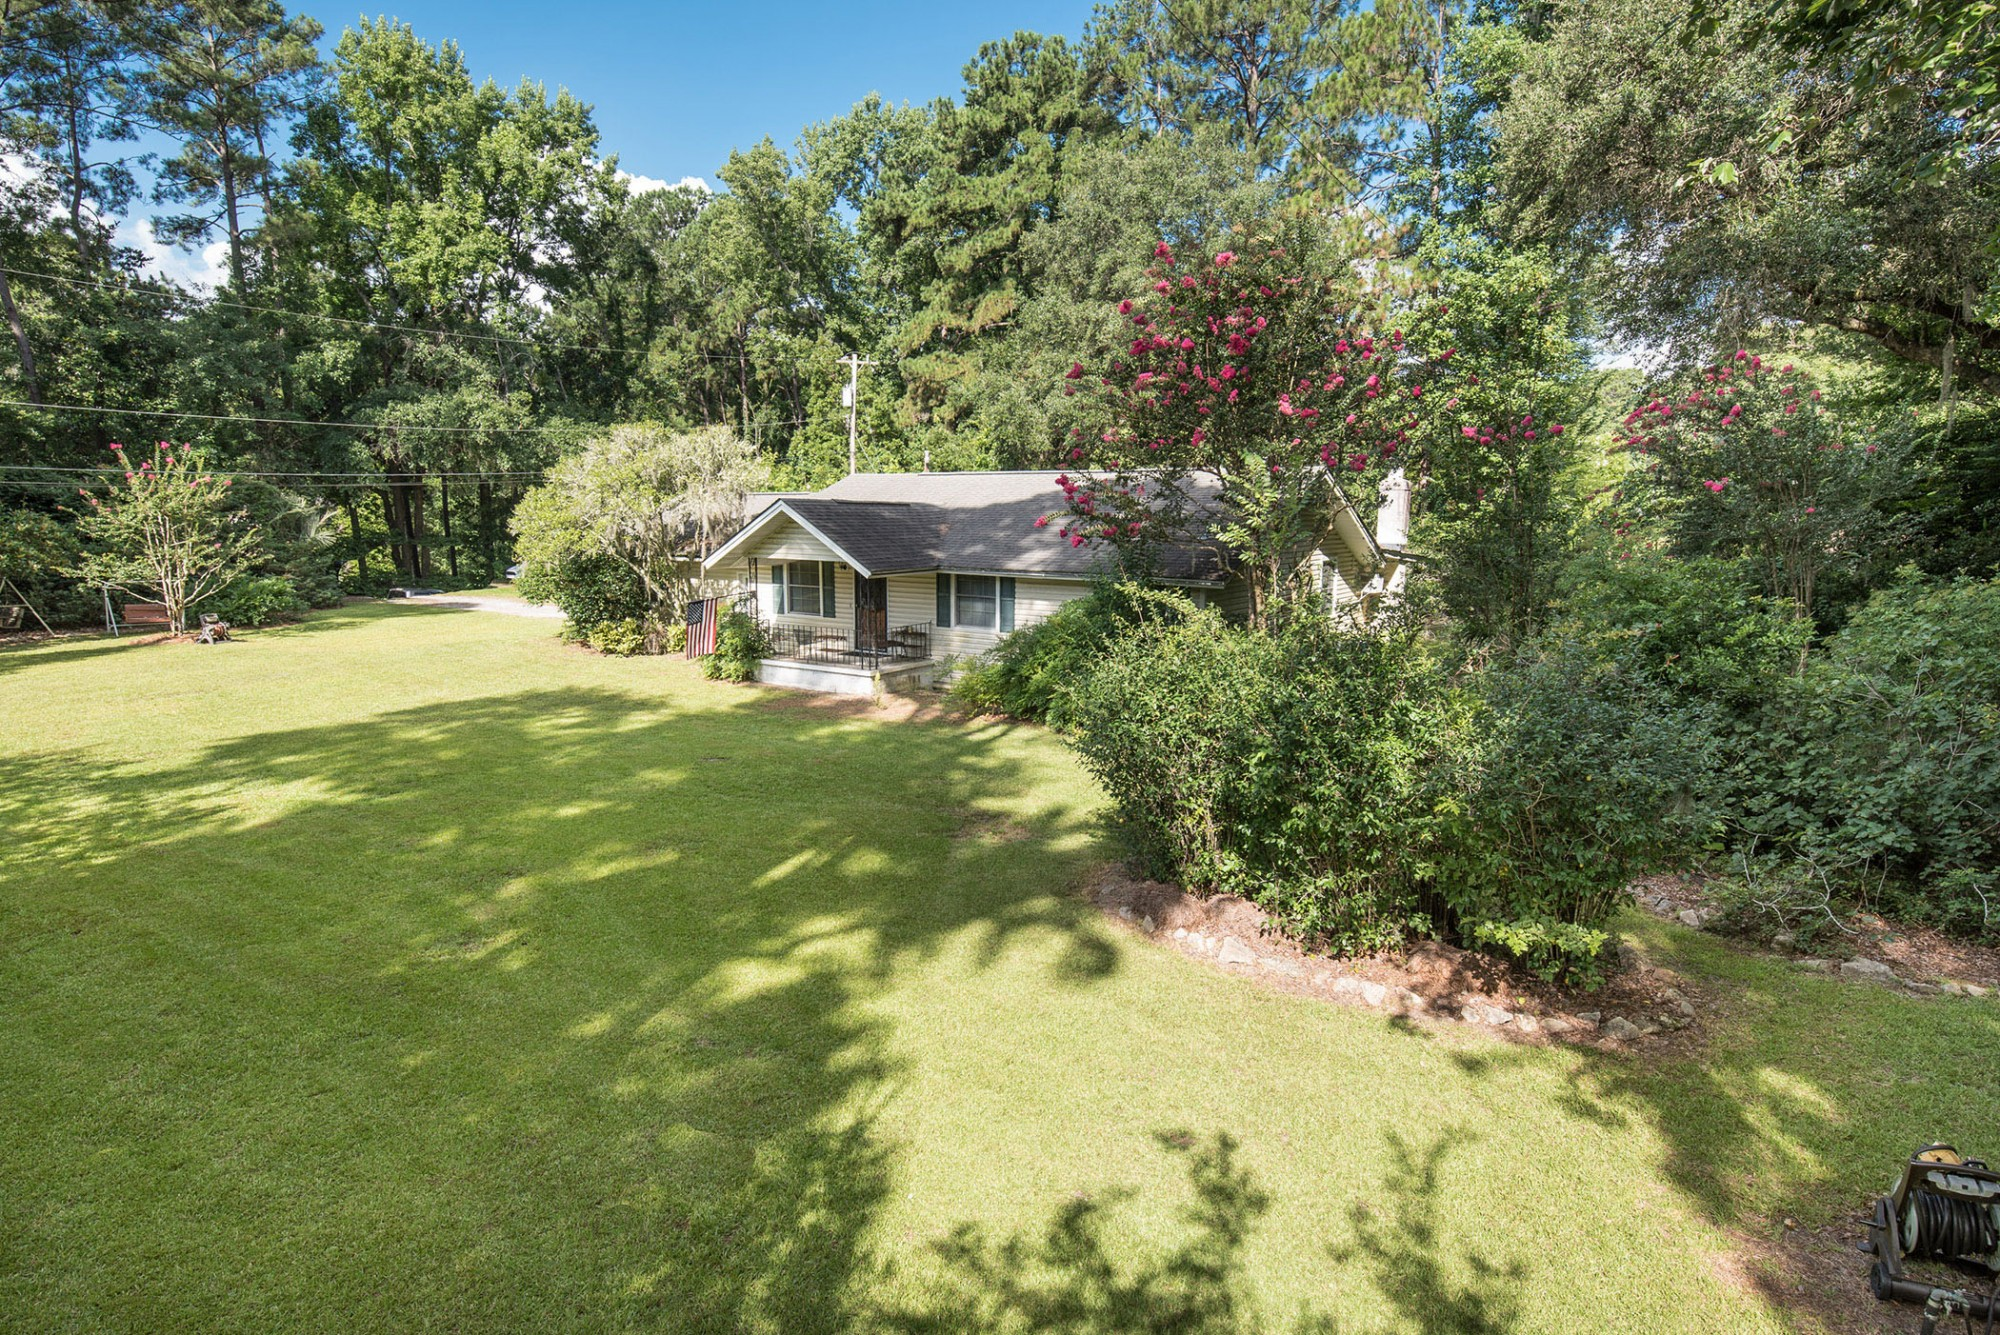 Whether you are looking for land in the heart of Savannah or investment opportunities, this is a rare find!